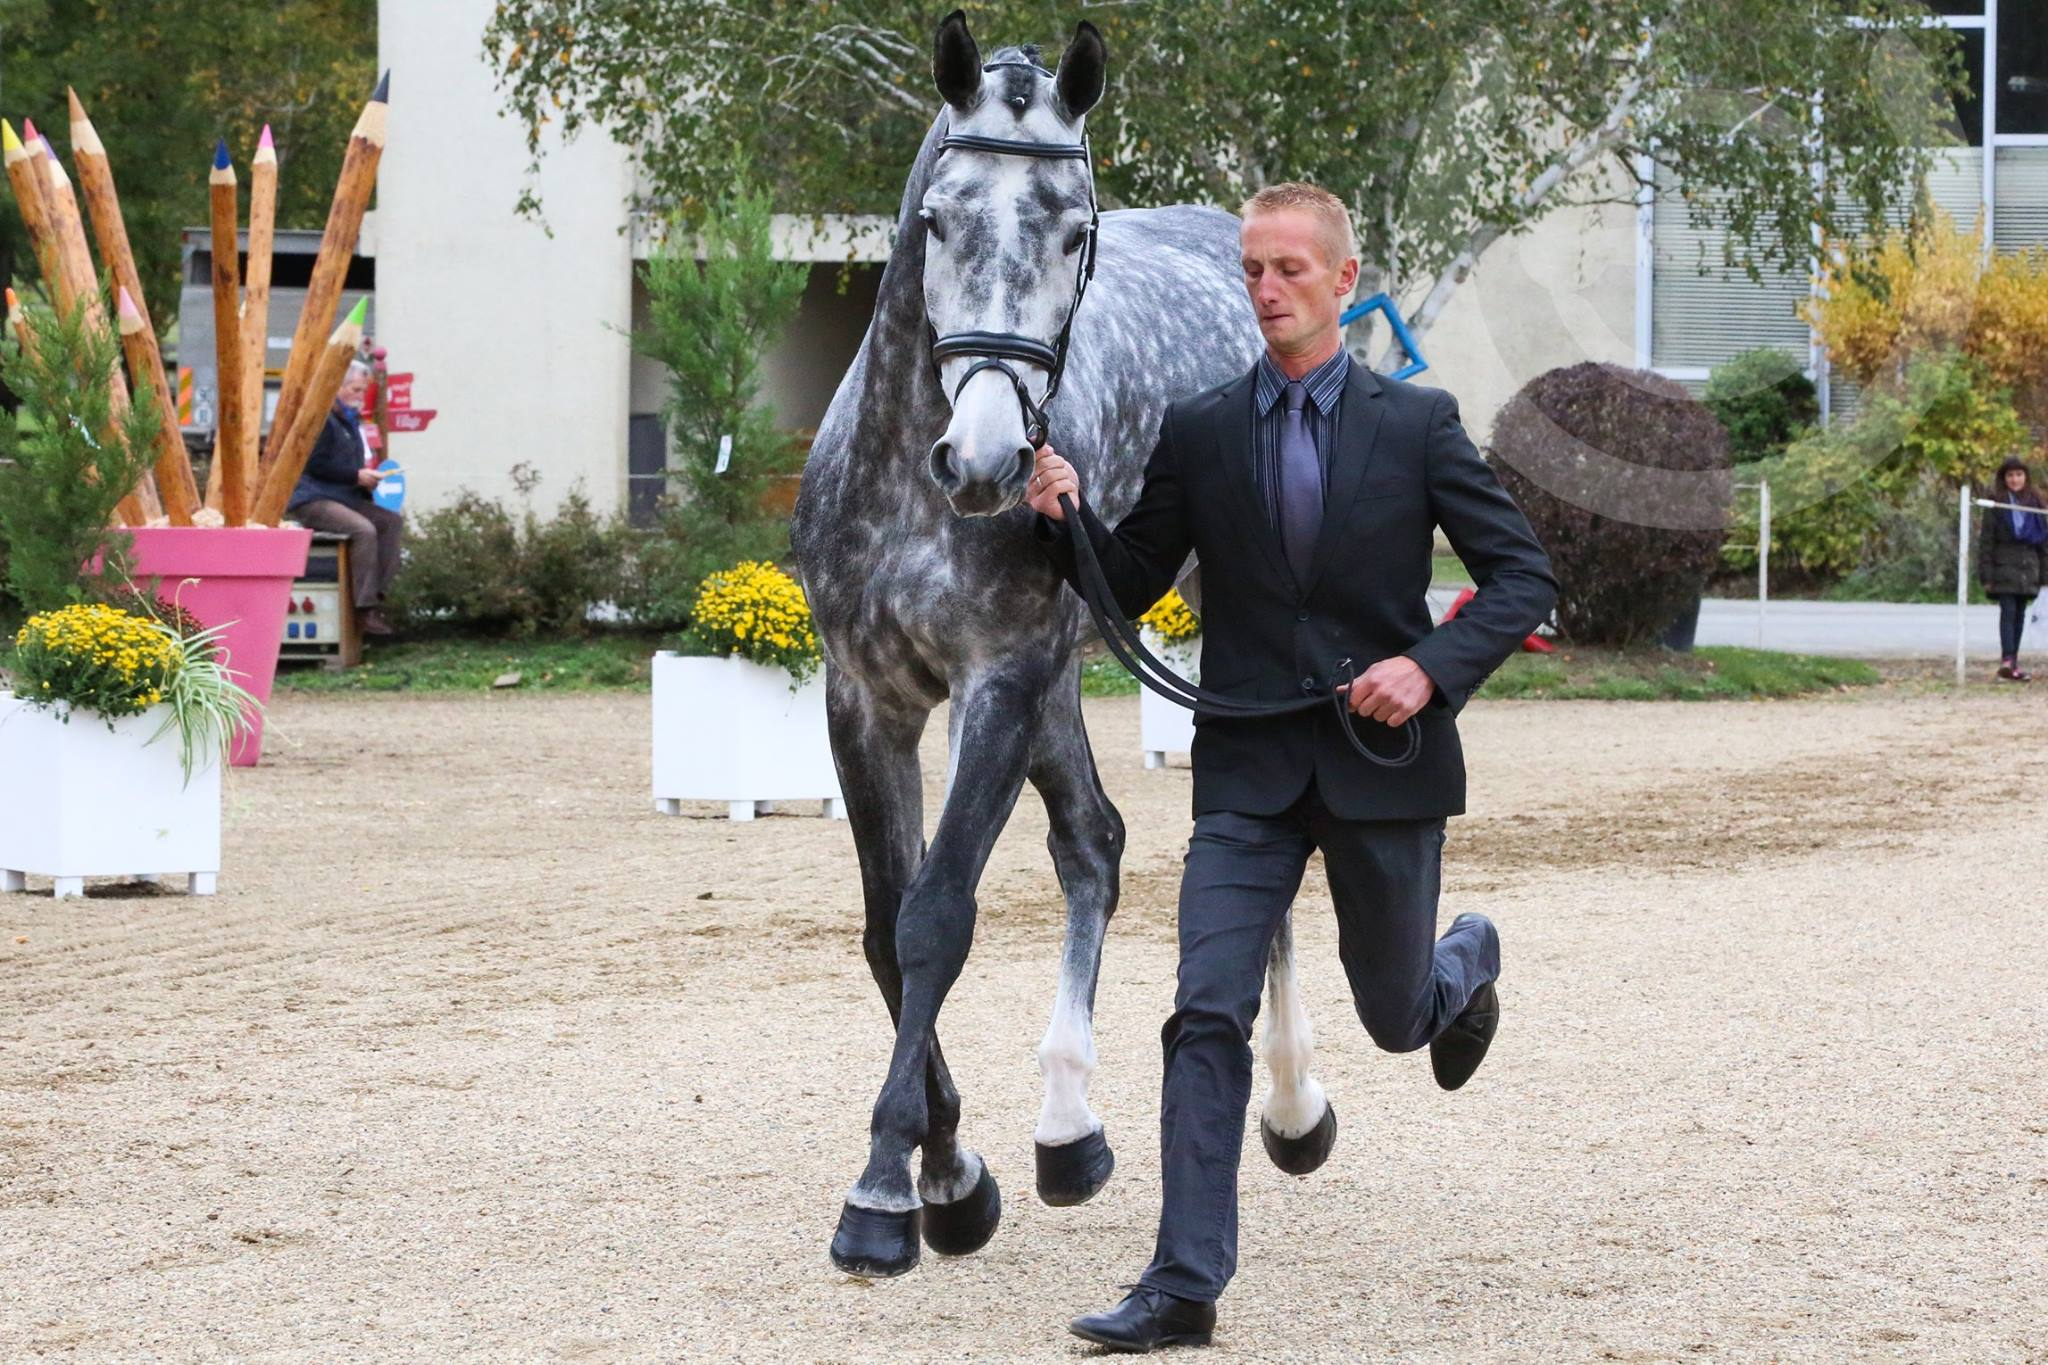 écurie-christopher-six-vanity-fair-cavalier-concours-complet-international-membre-equipe-de-france-pension-box-paddock-valorisation-coaching-gazeran-78 (4)